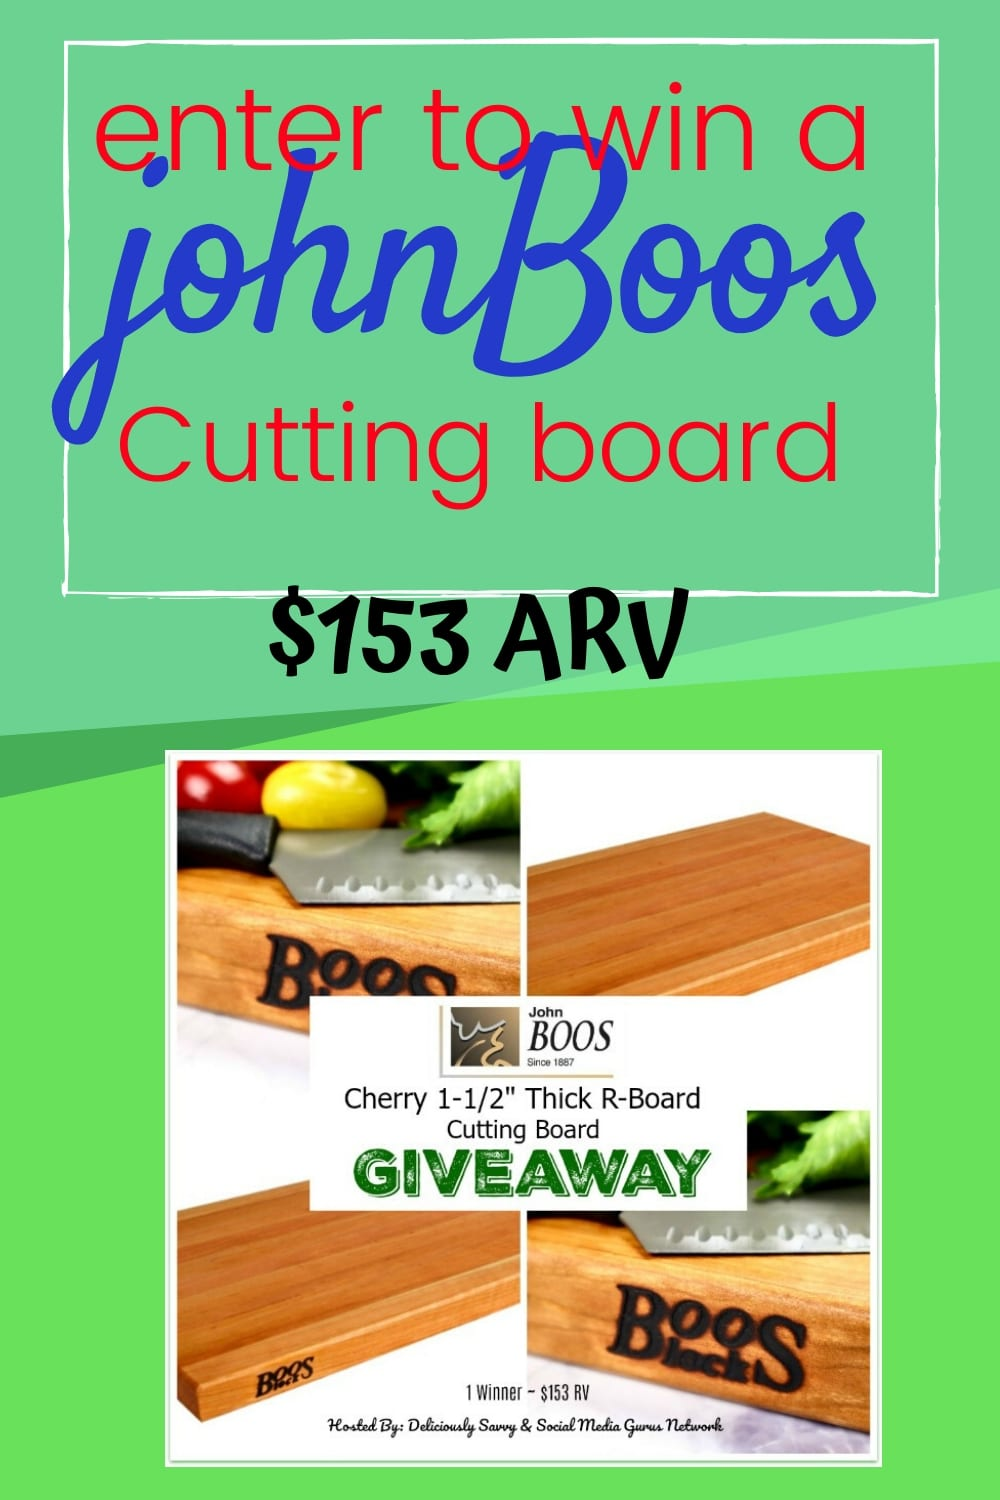 Enter to win a John Boos Cutting Board ($153 Value) ~ Giveaway ends 5-14